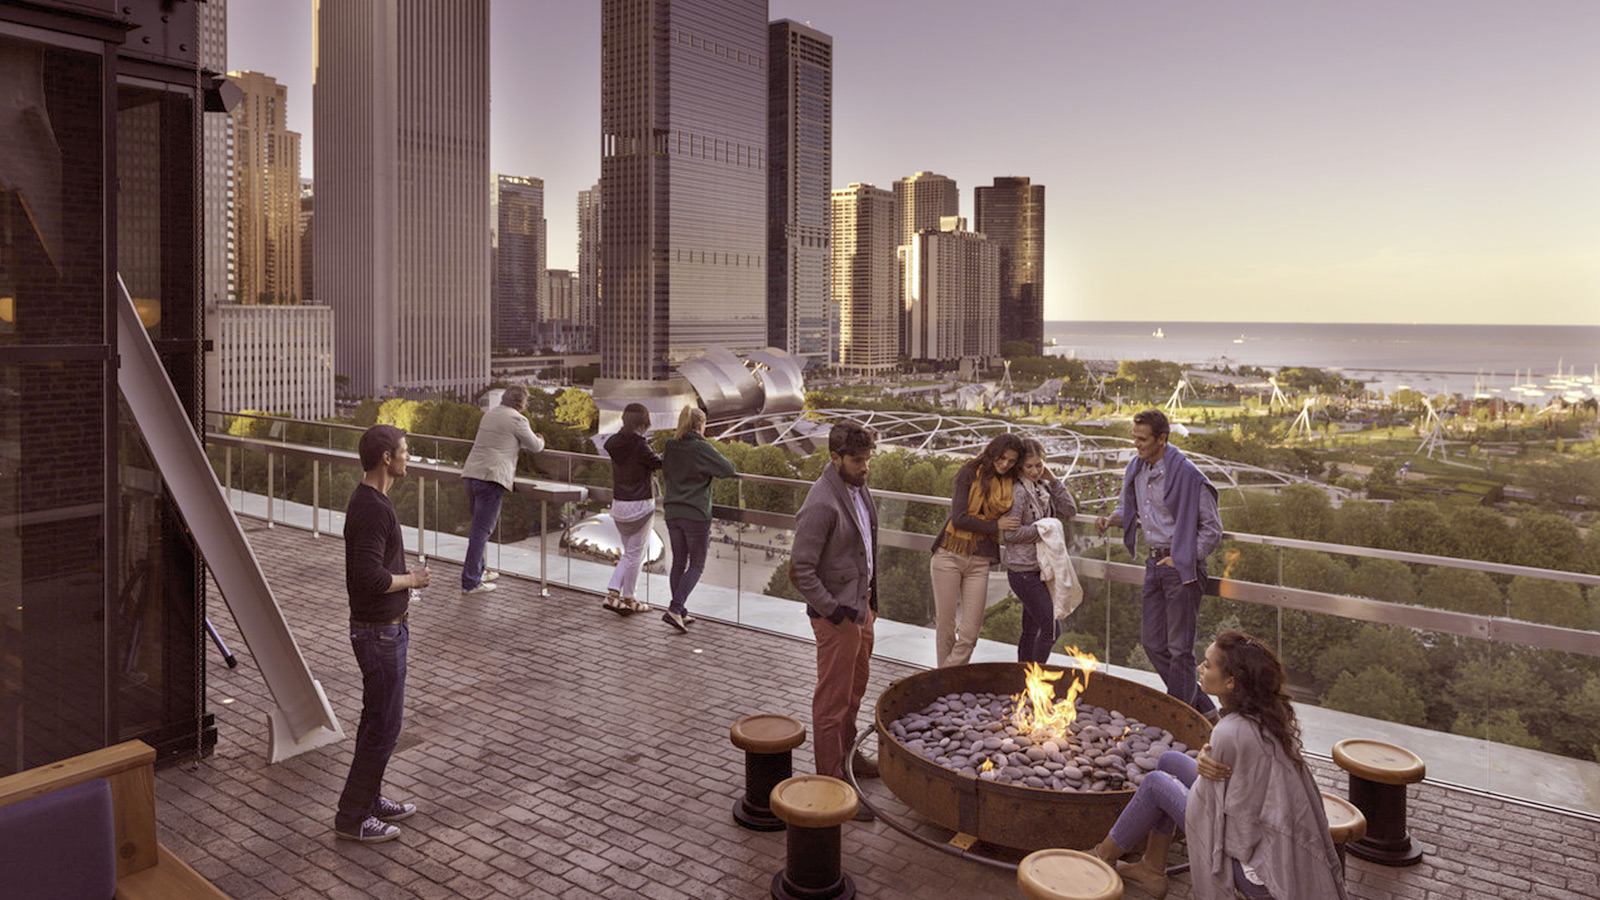 People On Rooftop Deck In Chicago